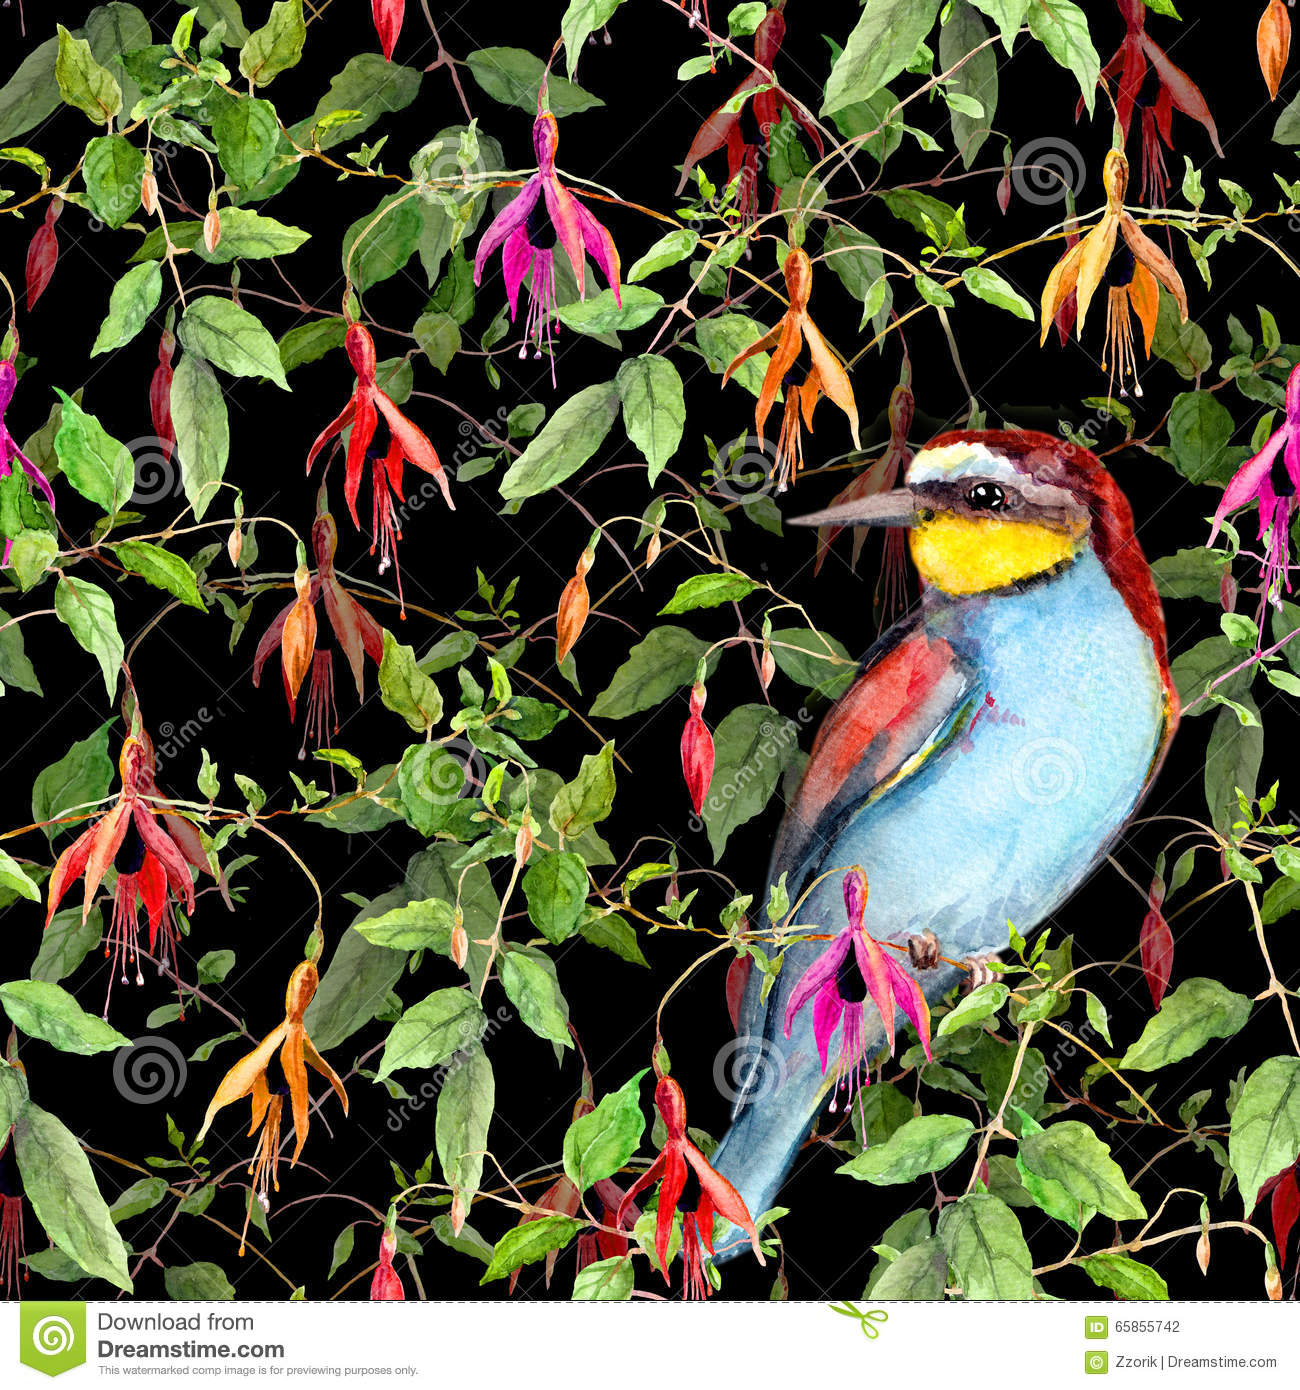 Flowers Made Black Brids: Exotic Fuchsia Flowers And Jungle Bird On Black Background